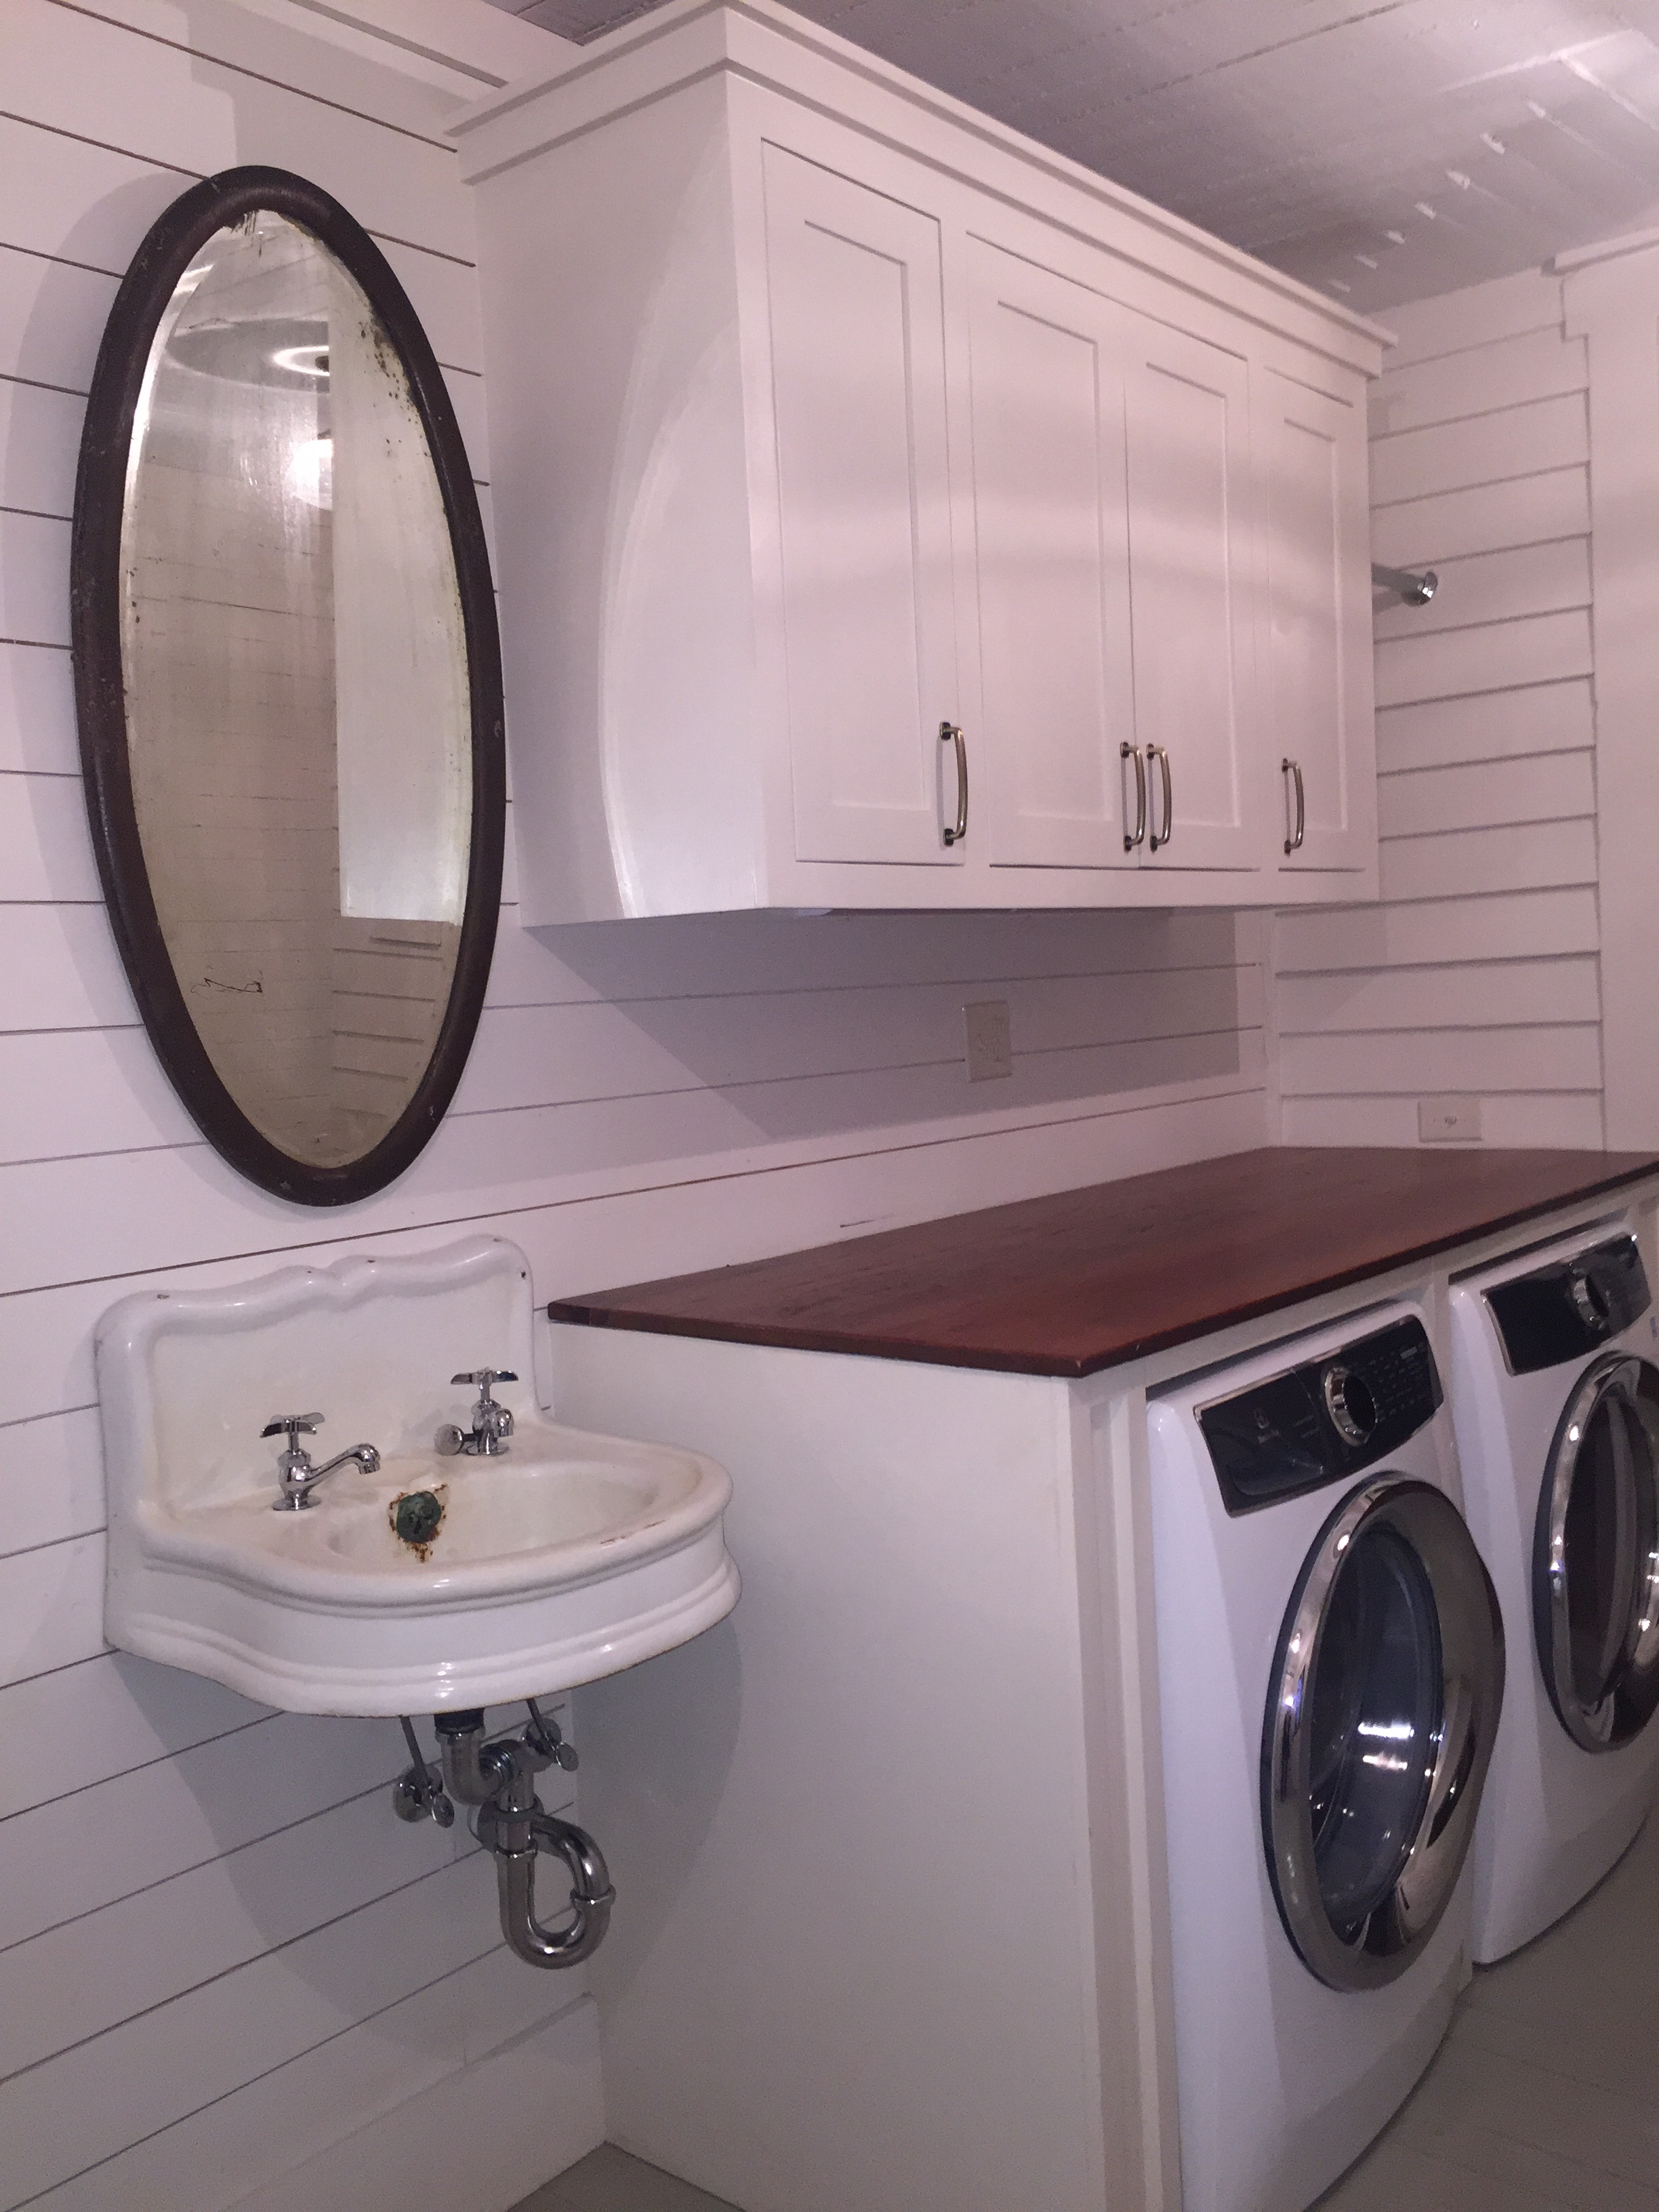 Shealy Laundry Room side view AFTER.JPG